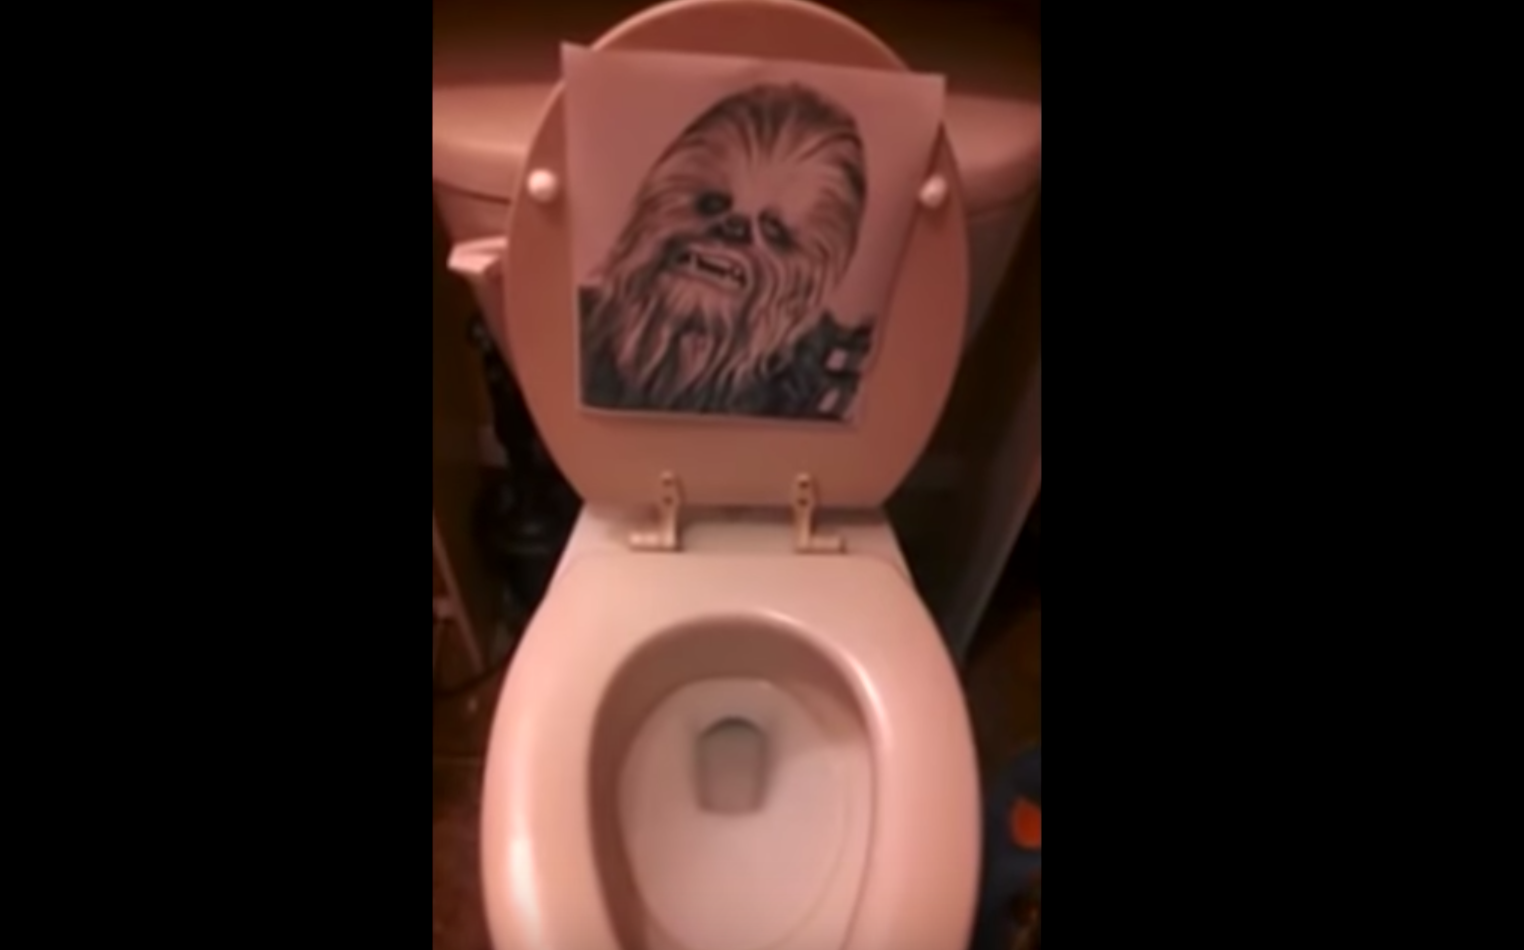 When Your Toilet Sounds Like Chewbacca, It's Time To Call The Plumber